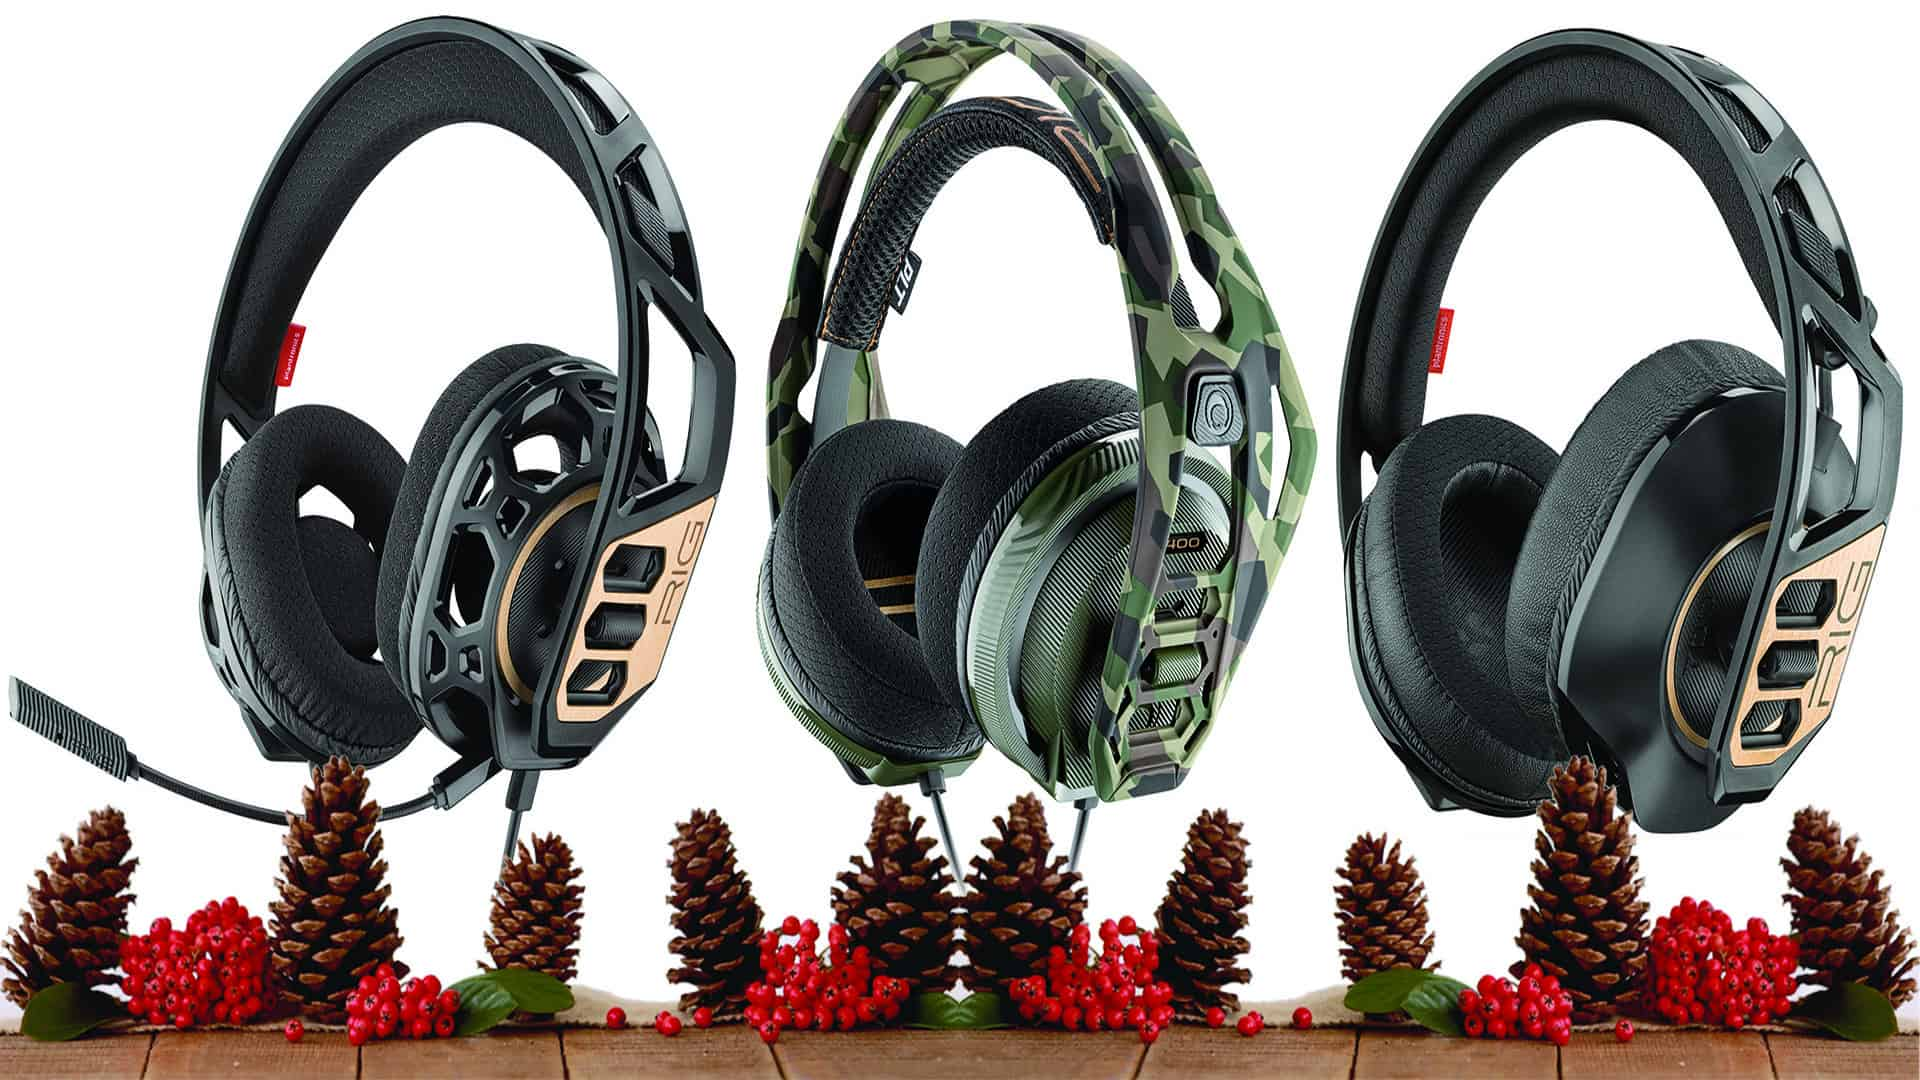 The RIG Gaming 2019 Christmas Gift Guide